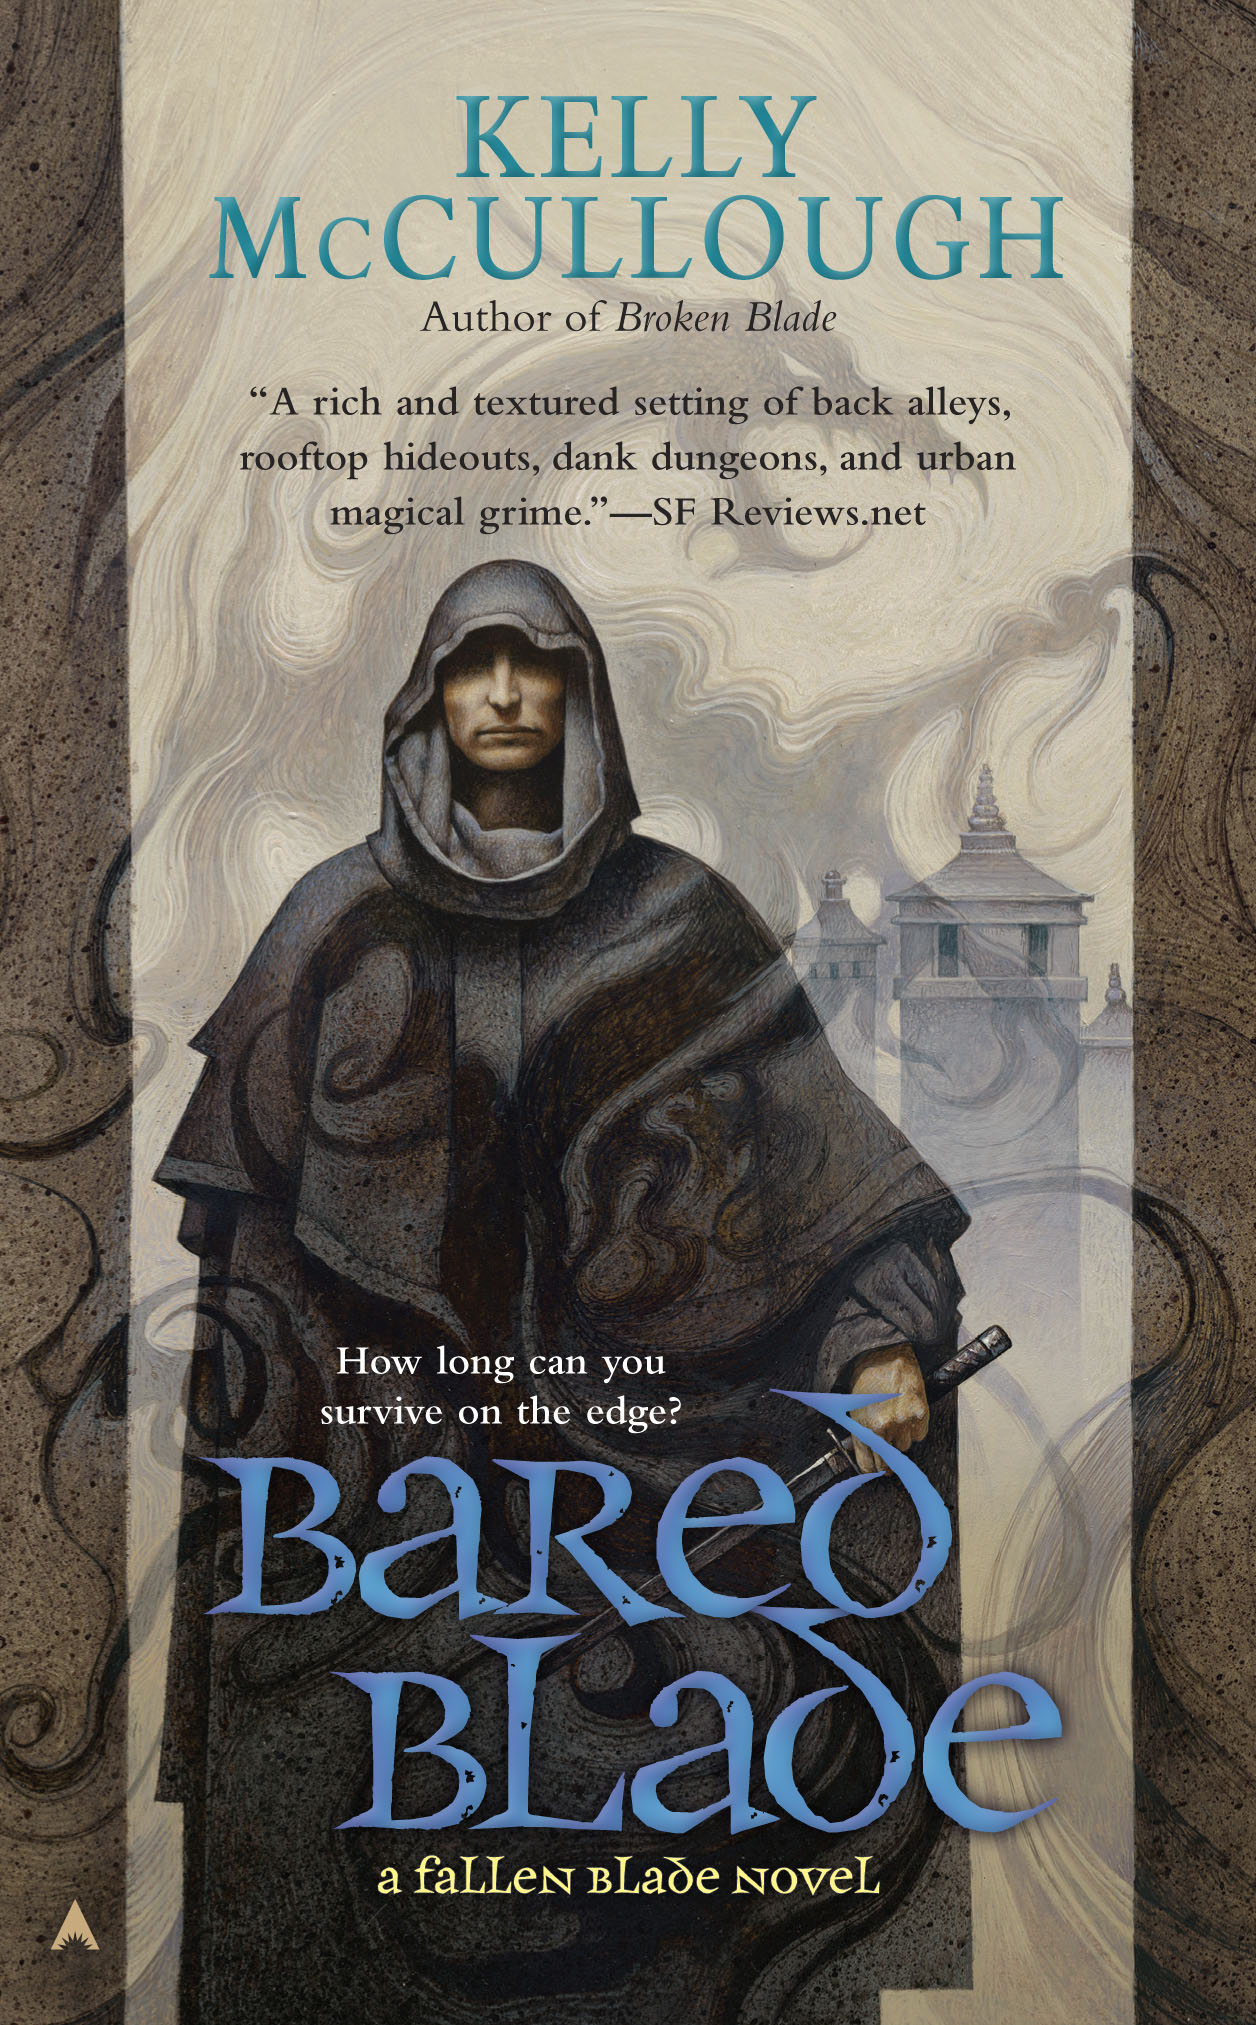 Bared Blade | Kelly McCullough